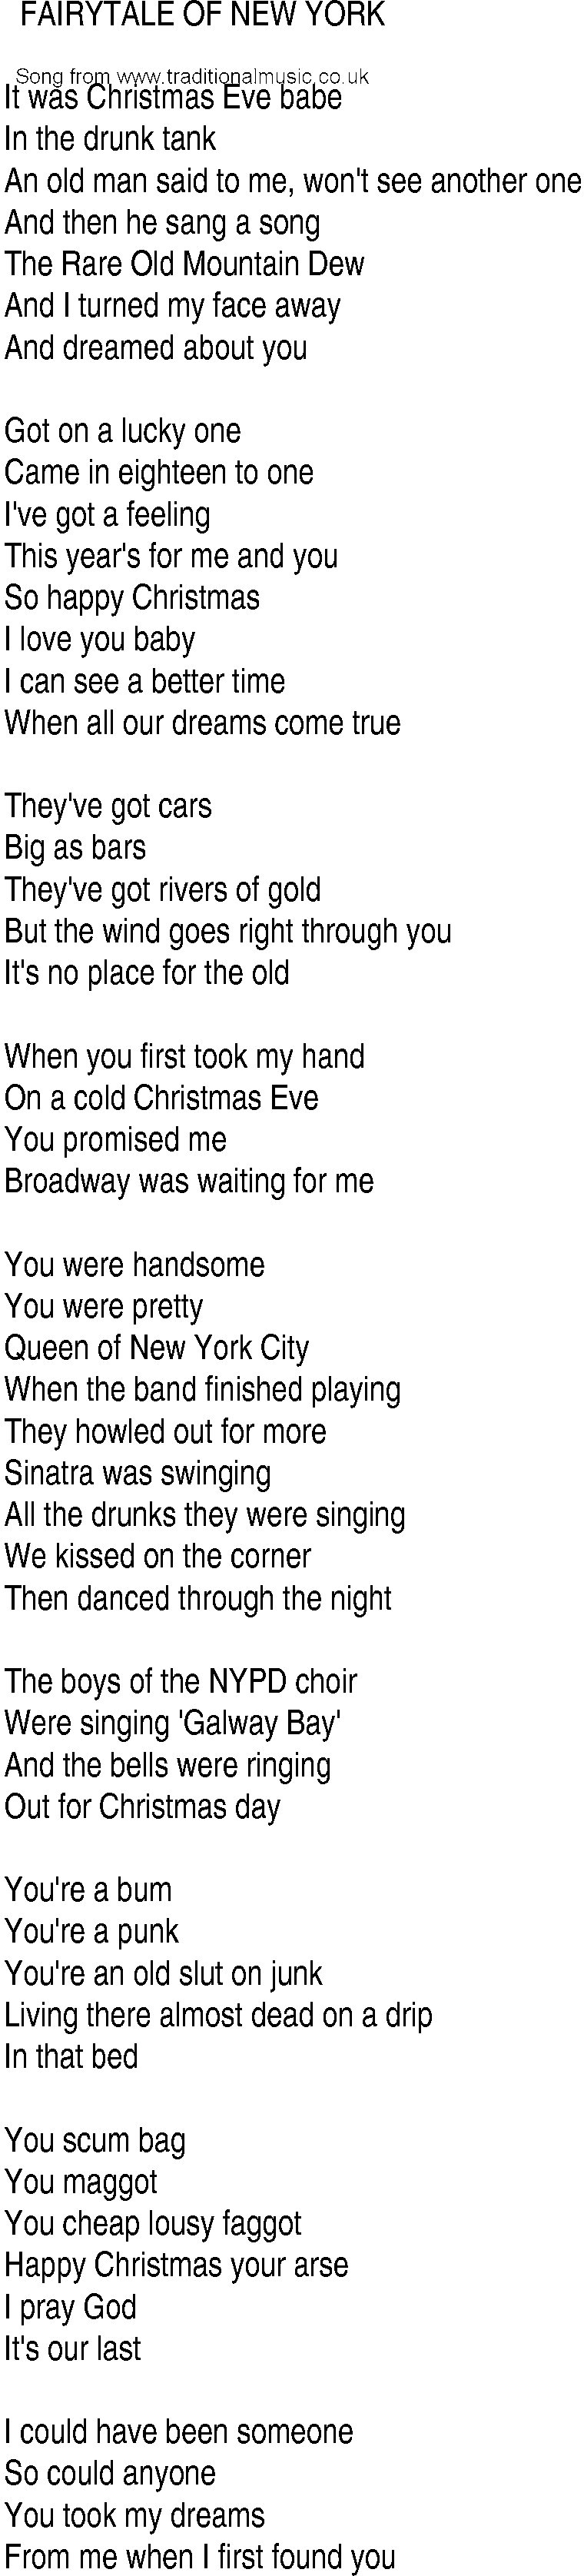 Irish Music, Song and Ballad Lyrics for: Fairytale Of New York